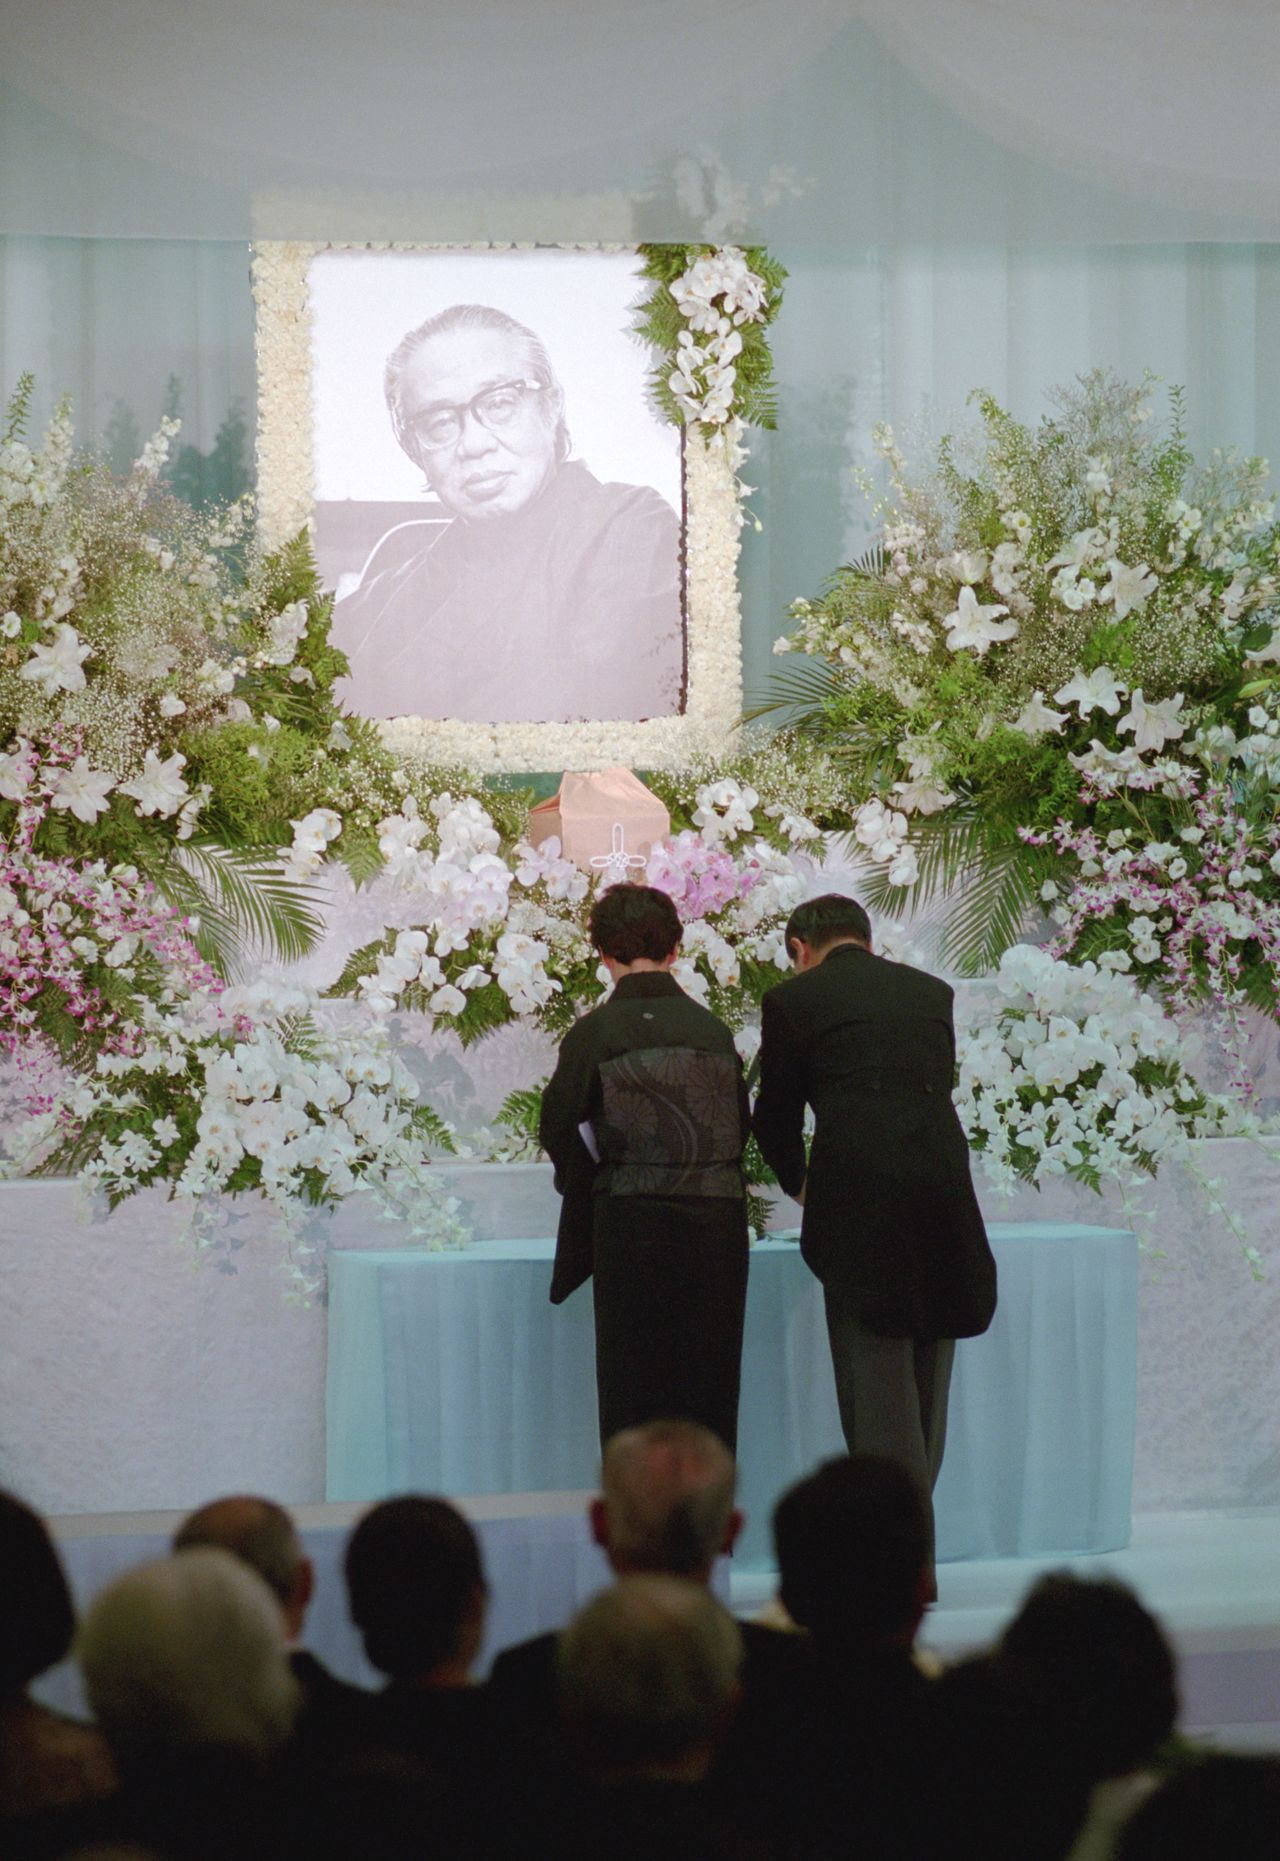 Matsumoto's eldest son Yōichi and his wife offer flowers at Matsumoto's memorial service, held on August 10, 1992. (© Jiji)